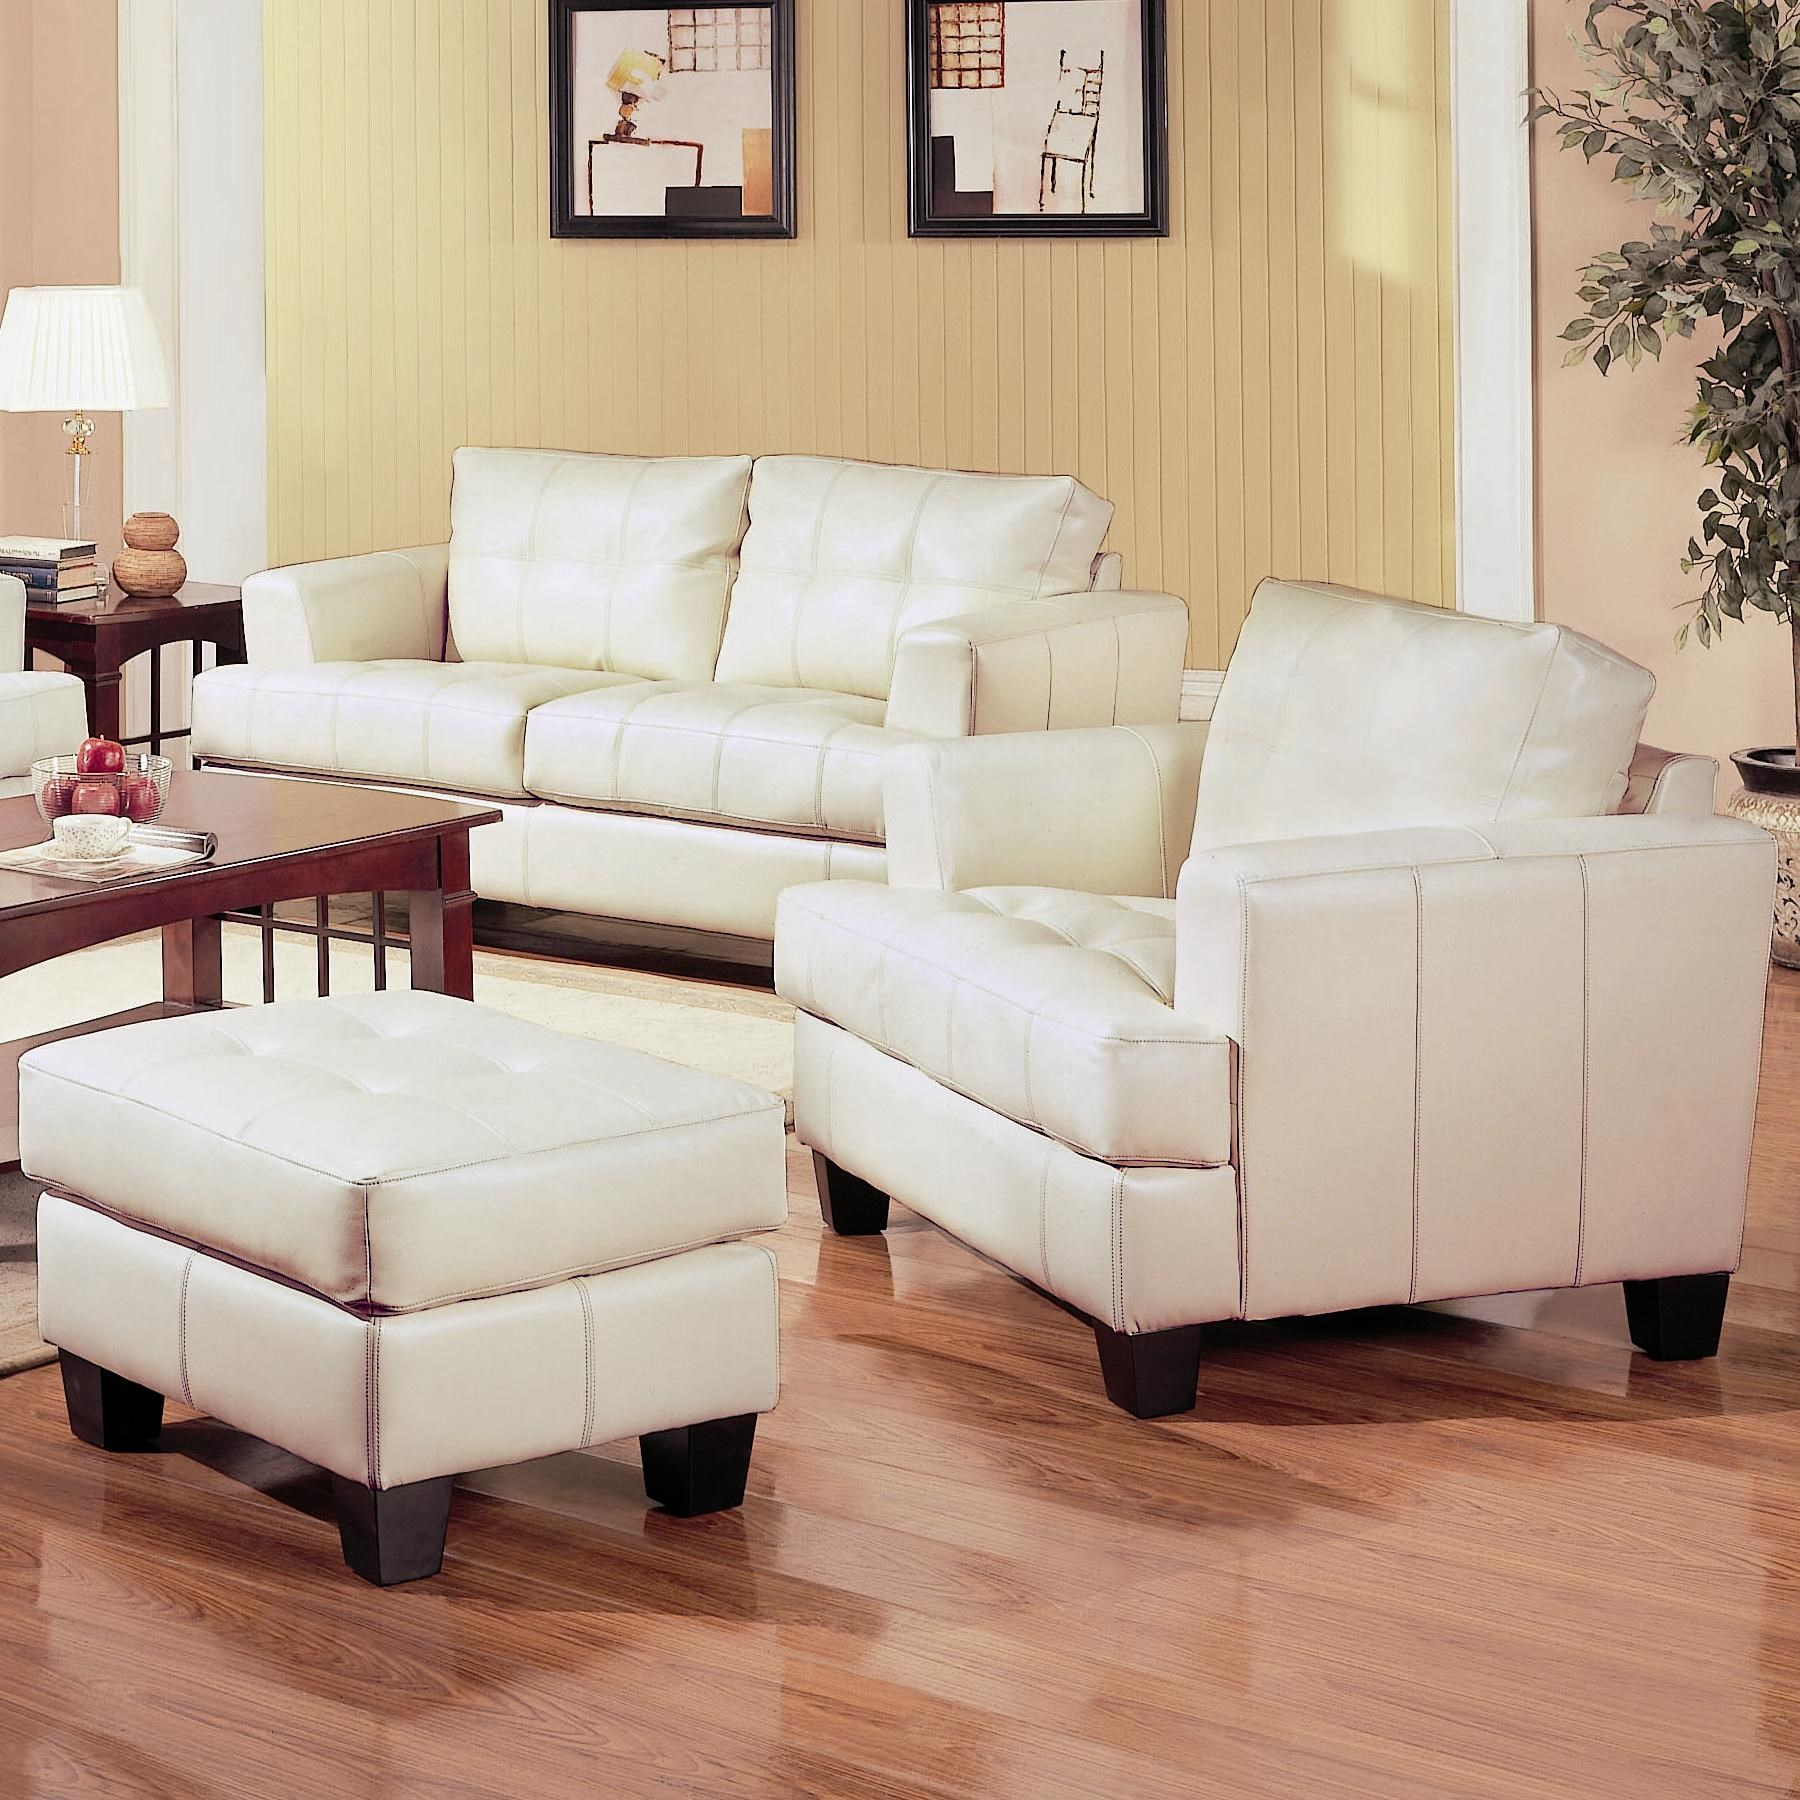 Samuel Contemporary Leather Chair And Tufted Leather Ottoman By Coaster At Knight Furniture Mattress